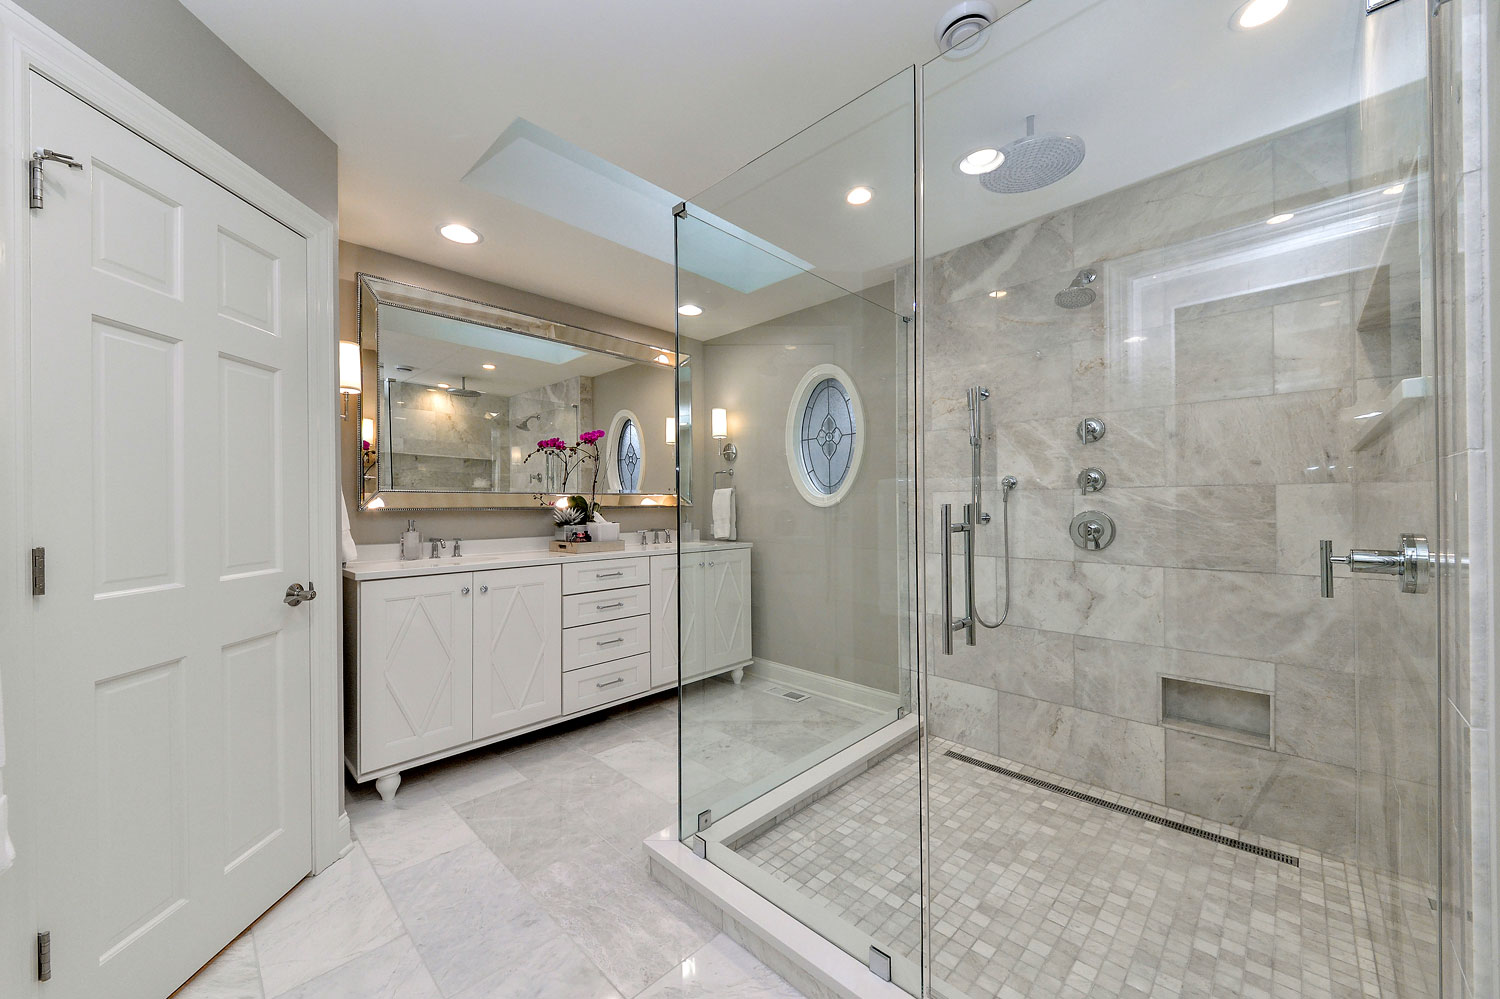 Bobby lisa 39 s master bathroom remodel pictures home for Remodeling ideas for bathrooms